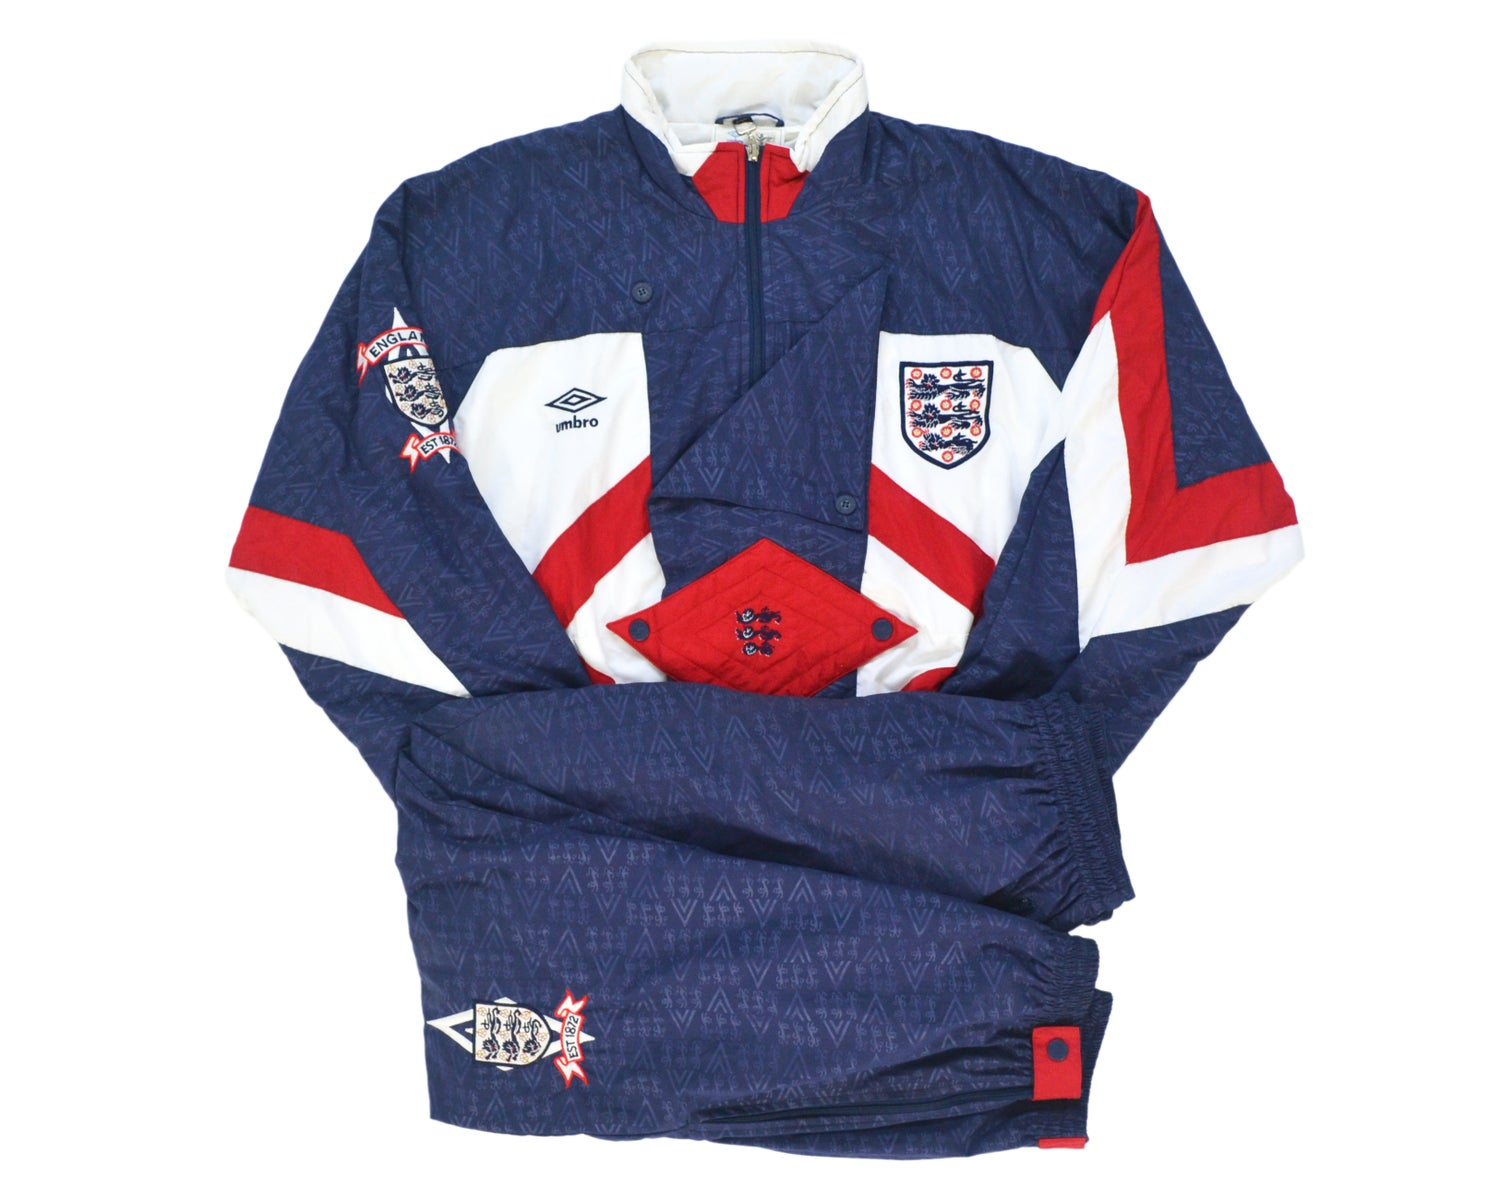 Image of 1990-92 Umbro England Tracksuit XL